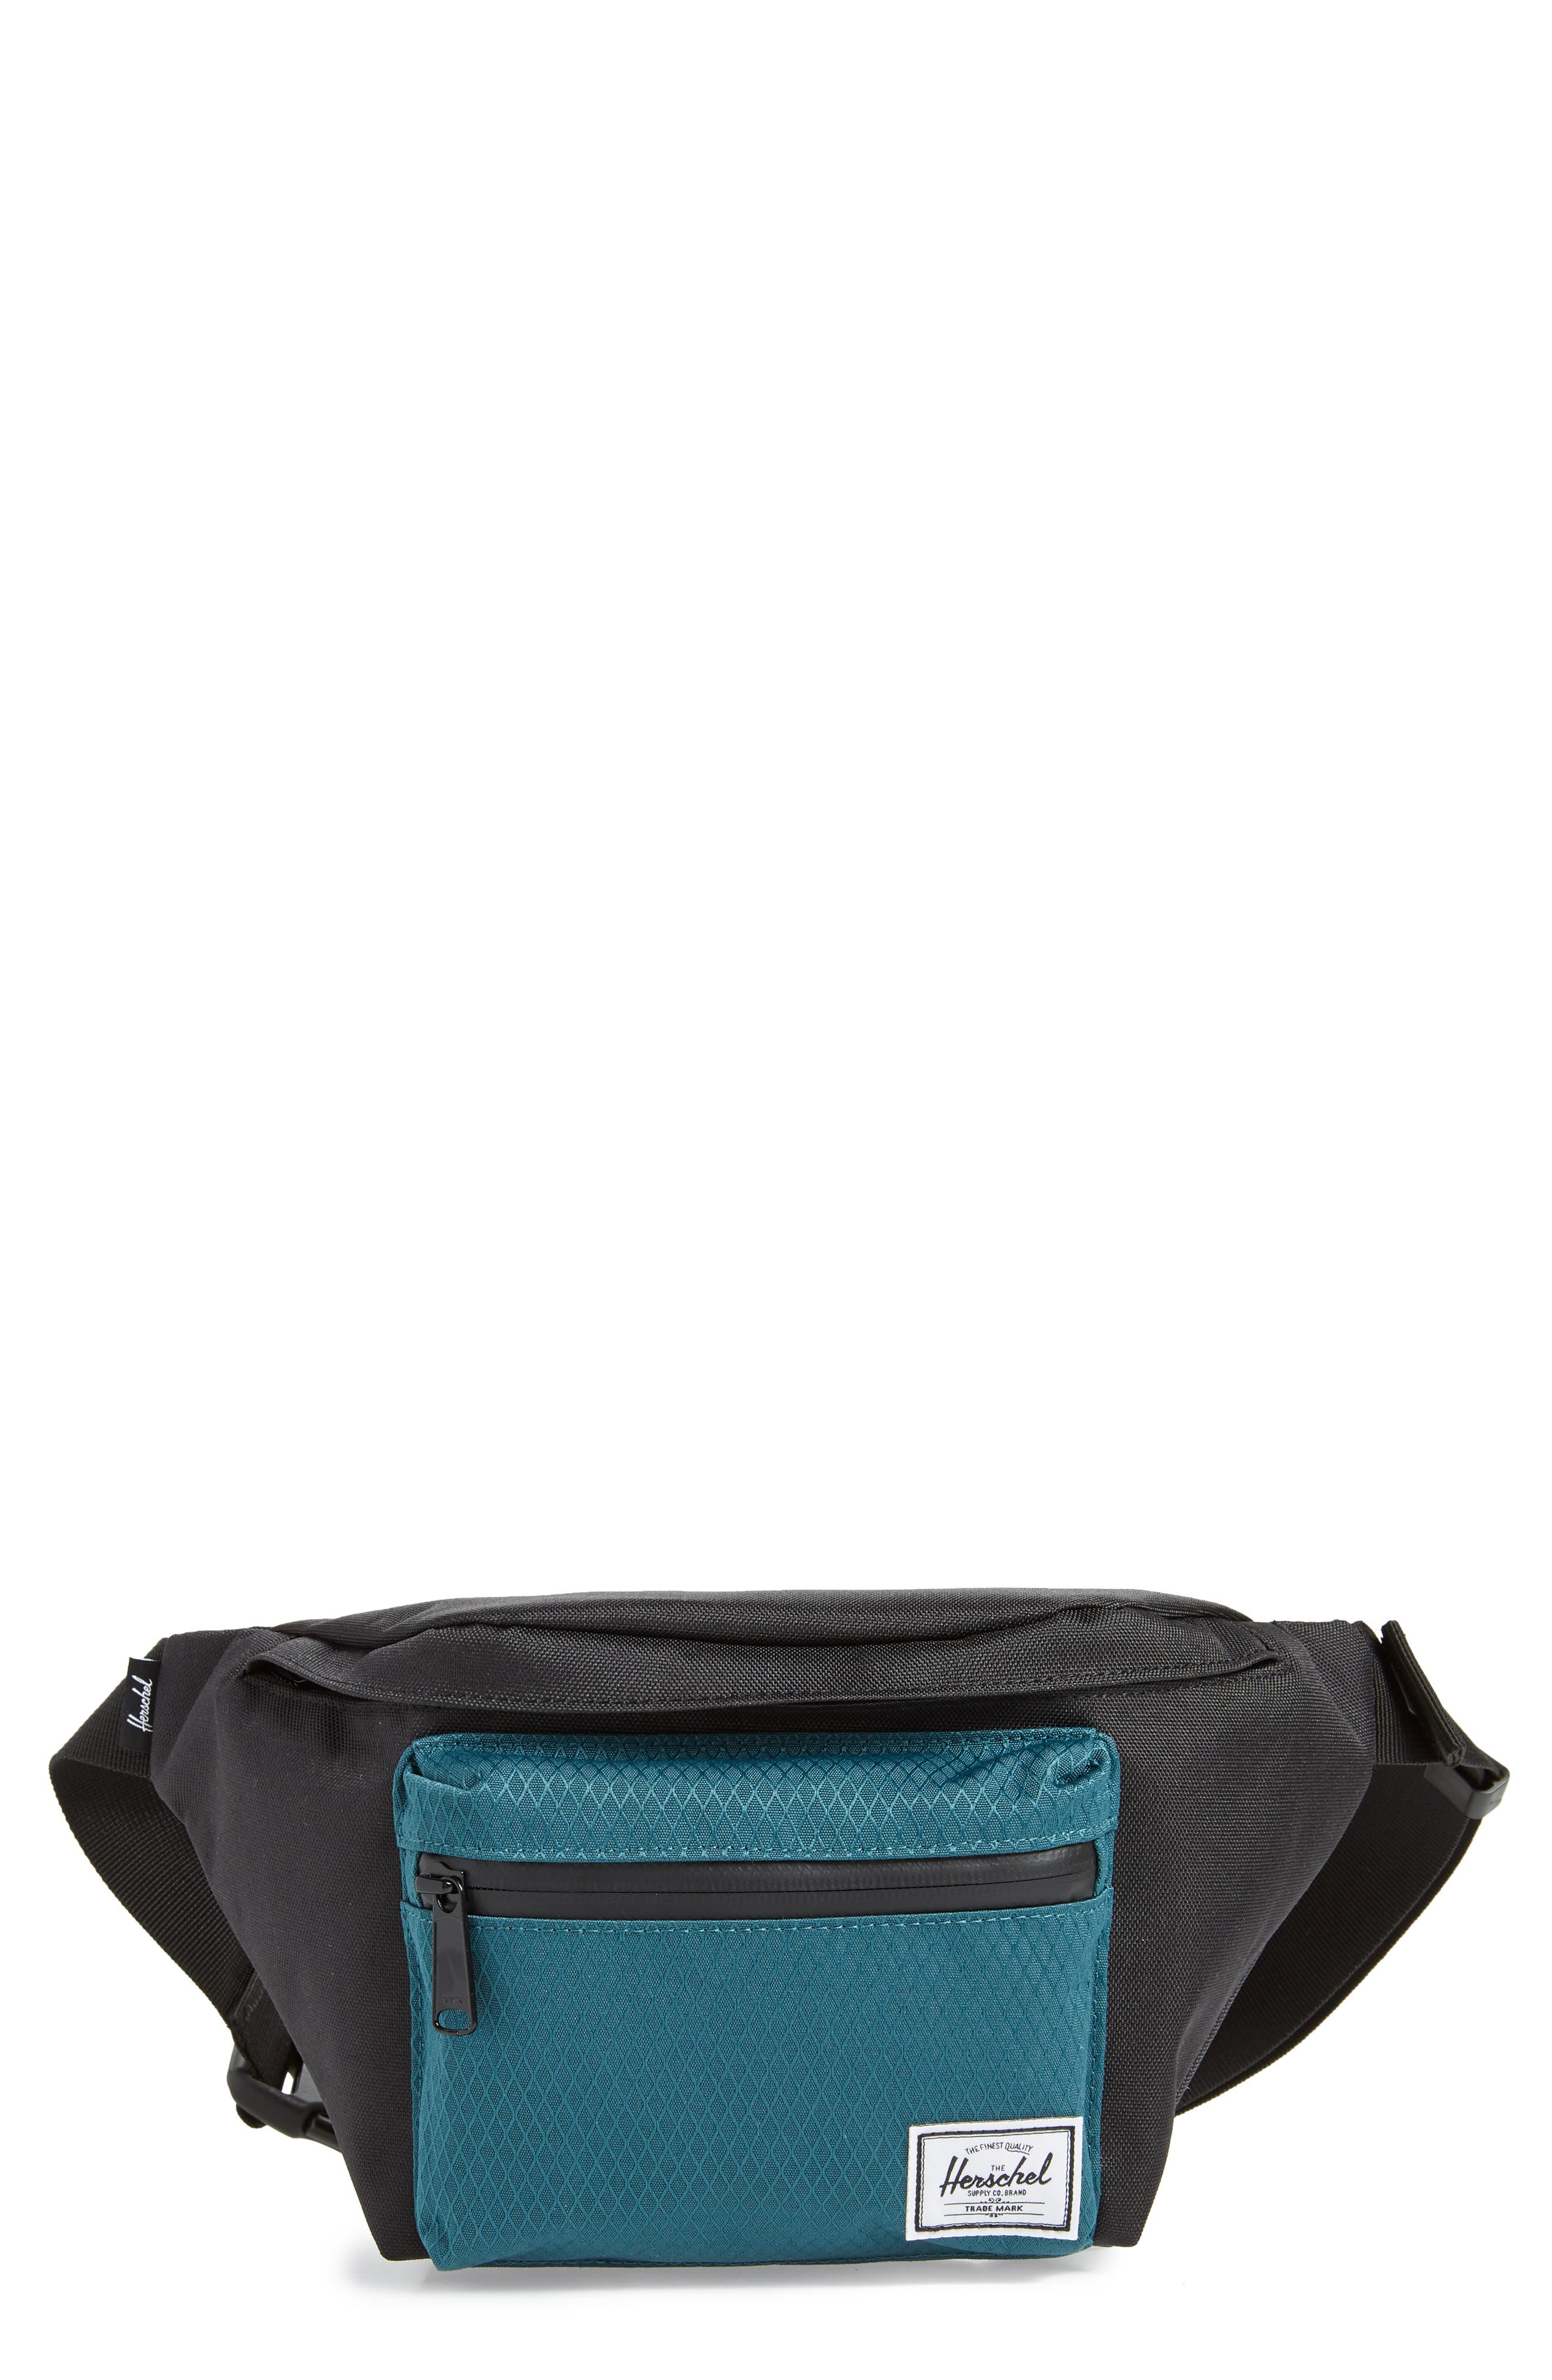 'Seventeen' Belt Bag,                             Main thumbnail 1, color,                             BLACK/ DEEP TEAL